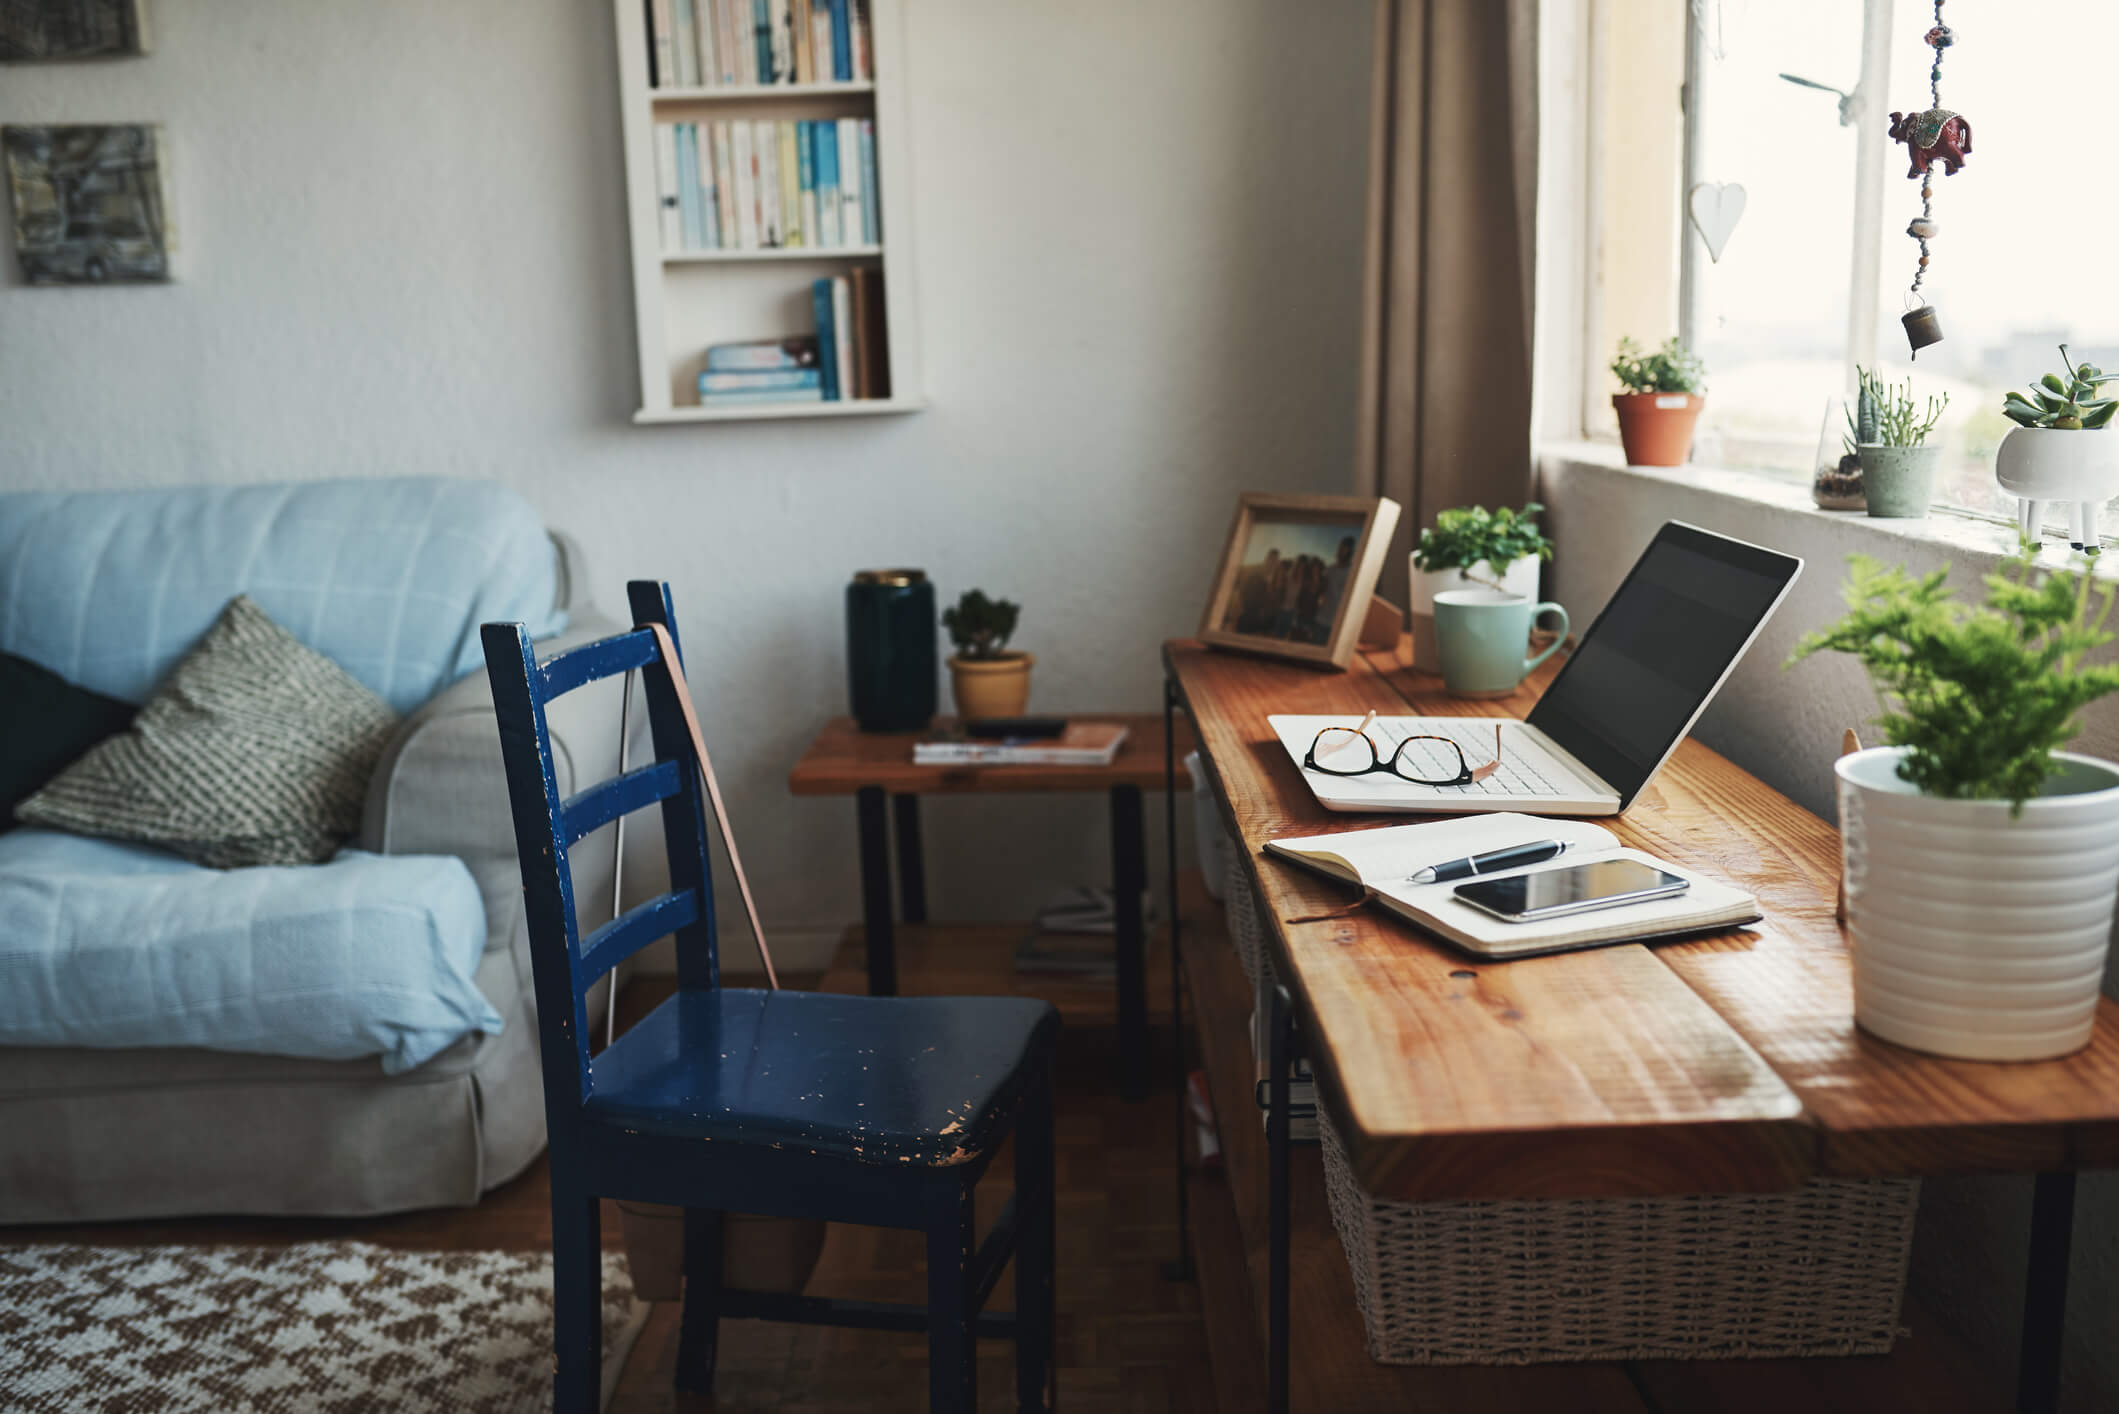 Home office for disabled person working remotely.